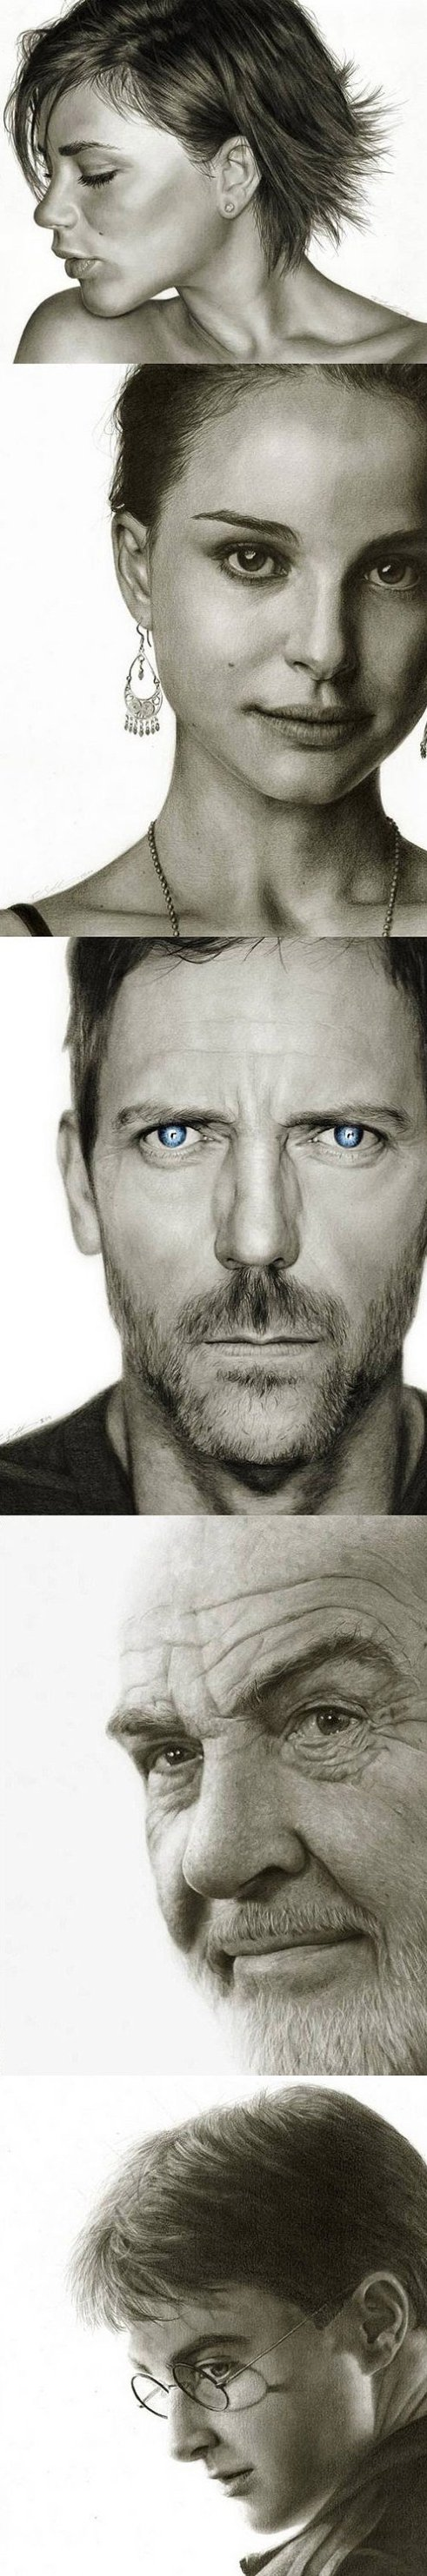 Amazing hand drawings of celebrities – Made using a pencil